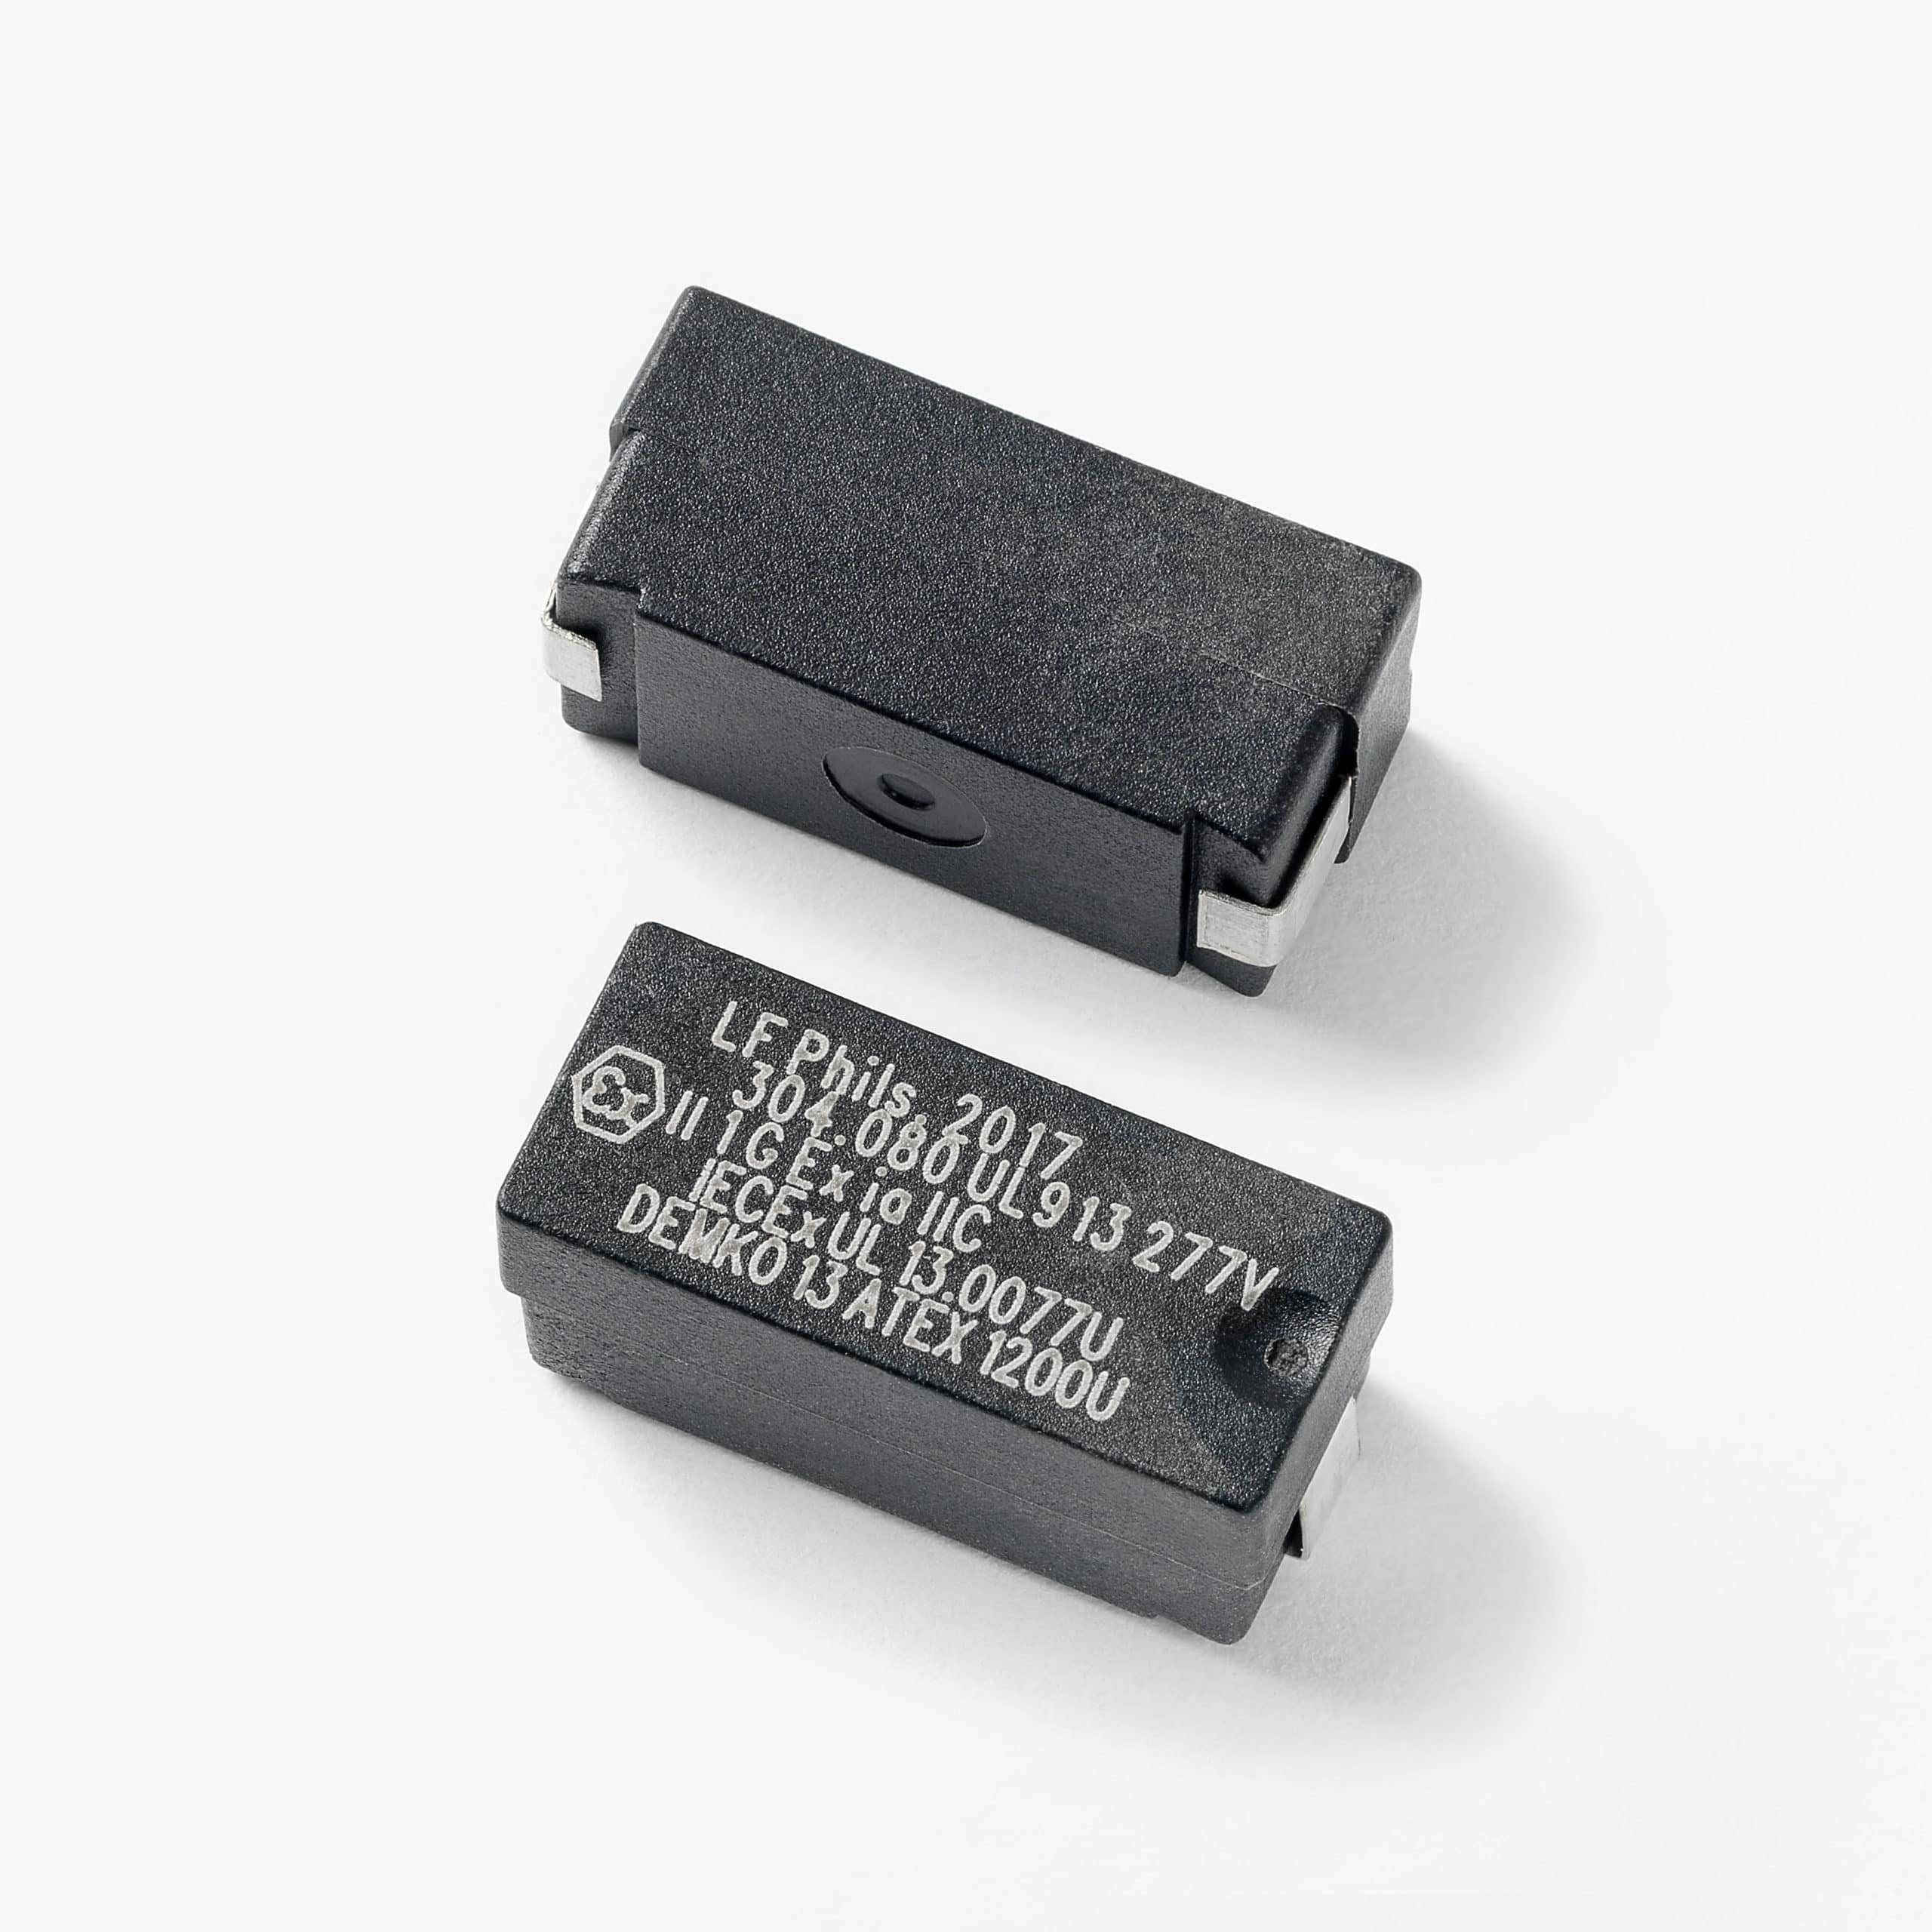 Littelfuse Introduces First Encapsulated Surface Mount Fuse Designed for Intrinsic Safety Protection